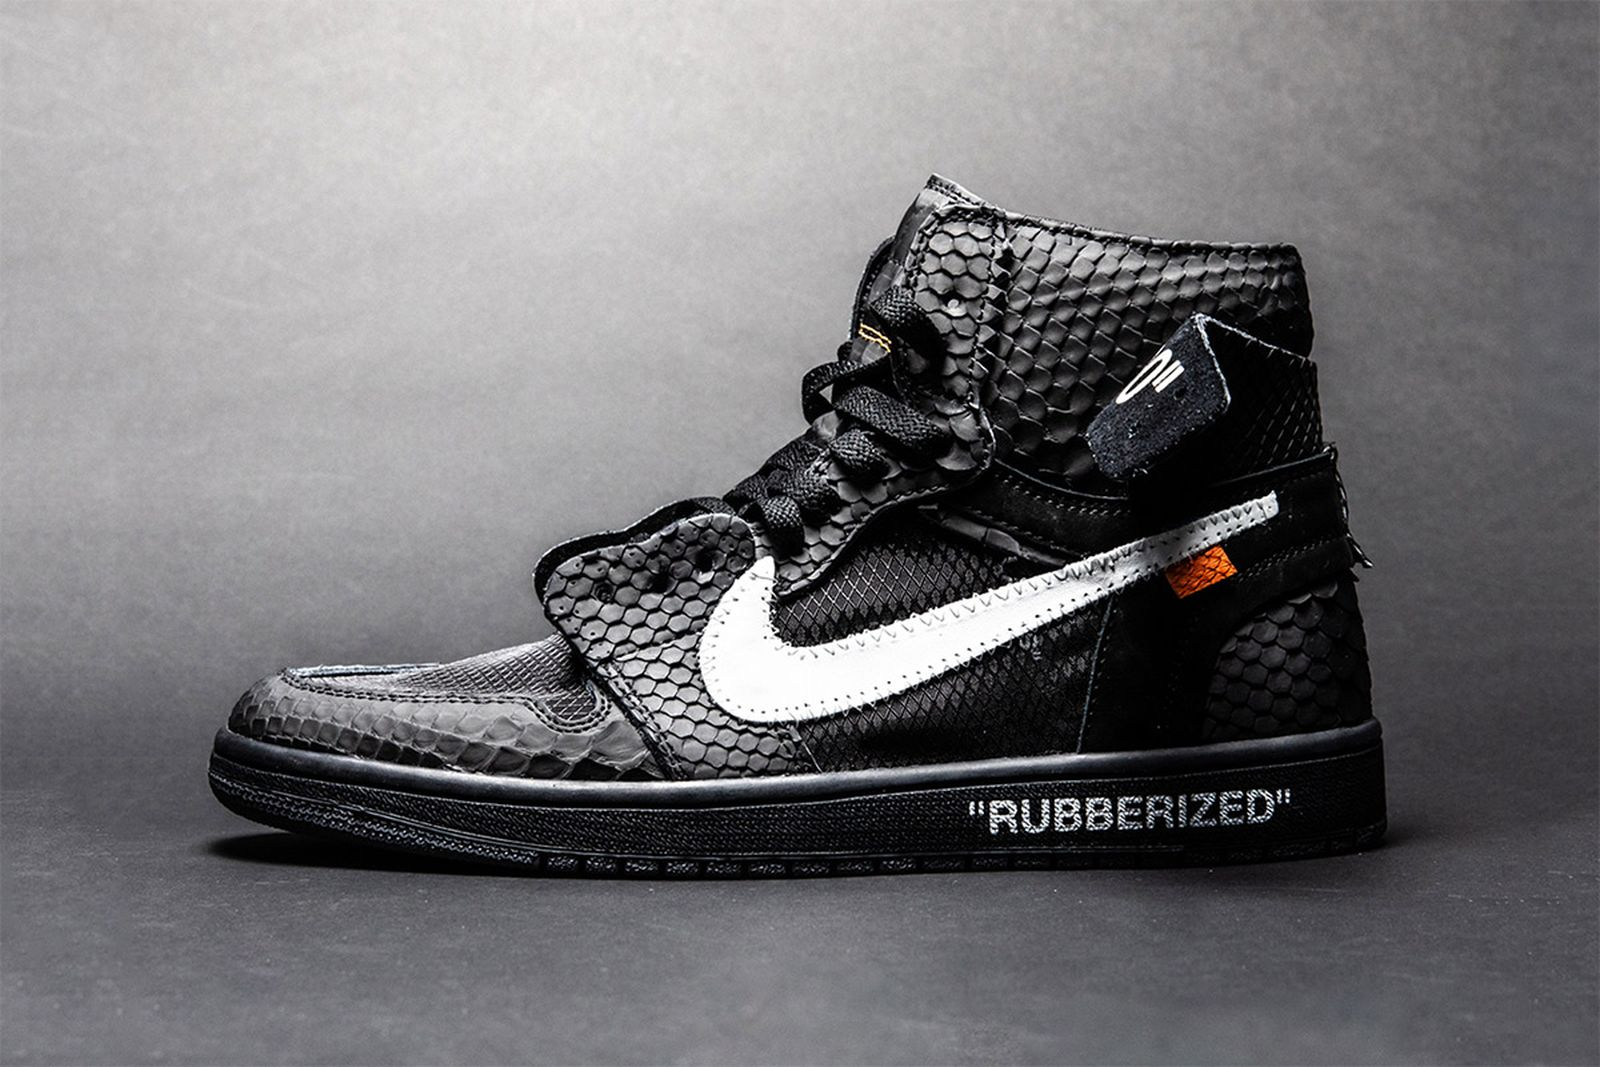 Take A Look At The Shoe Surgeon S Lux Rubberized Python Aj1